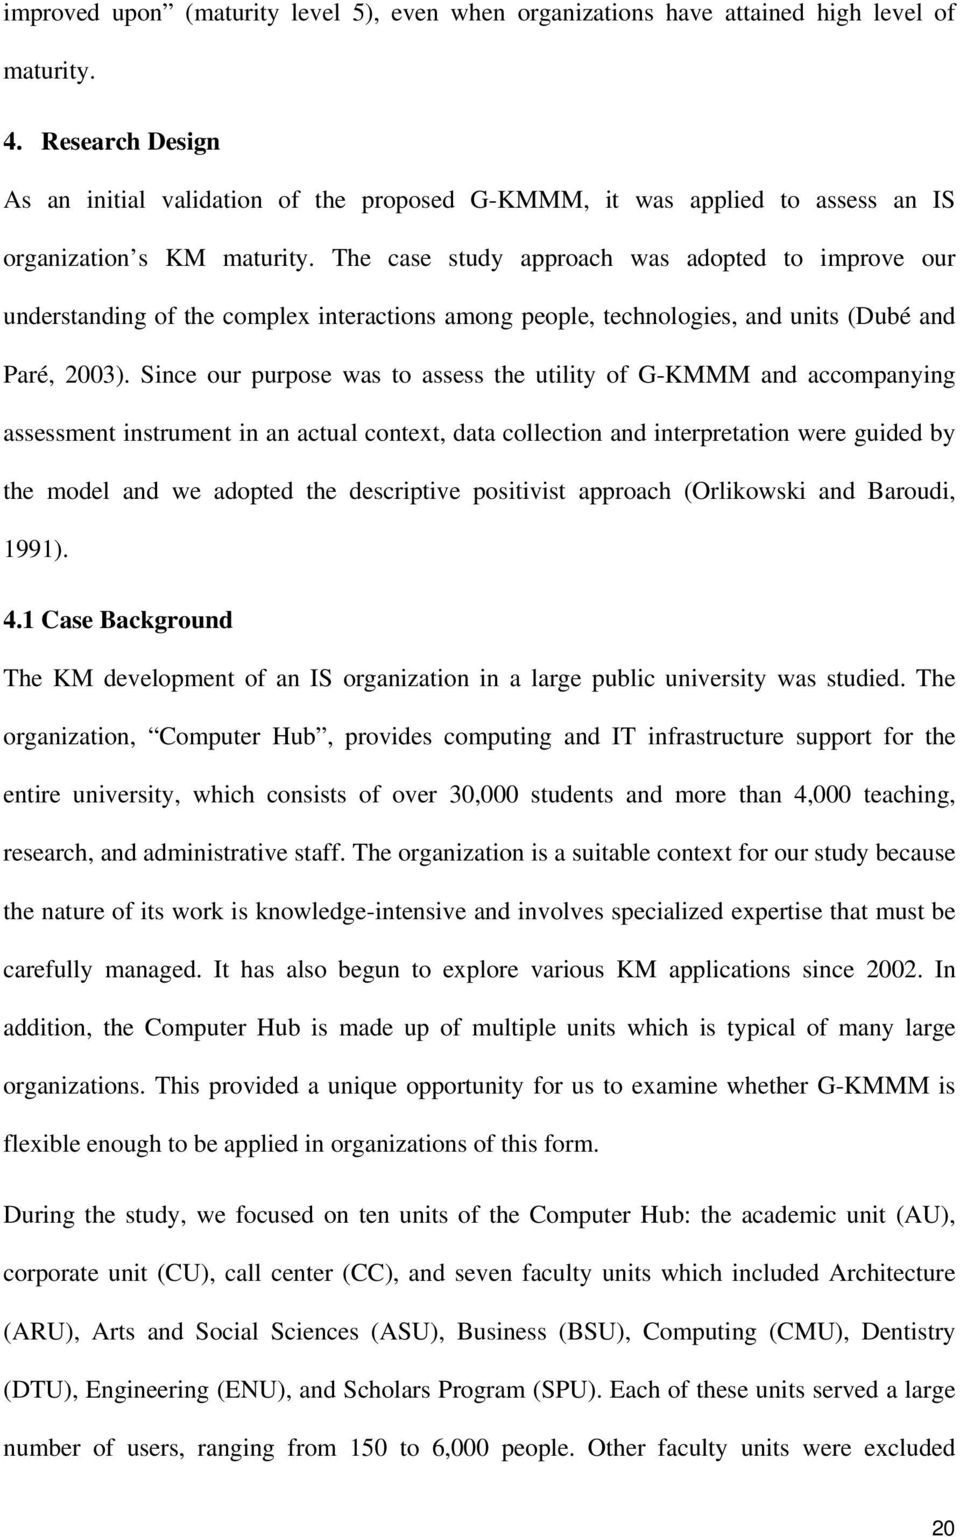 The case study approach was adopted to improve our understanding of the complex interactions among people, technologies, and units (Dubé and Paré, 2003).